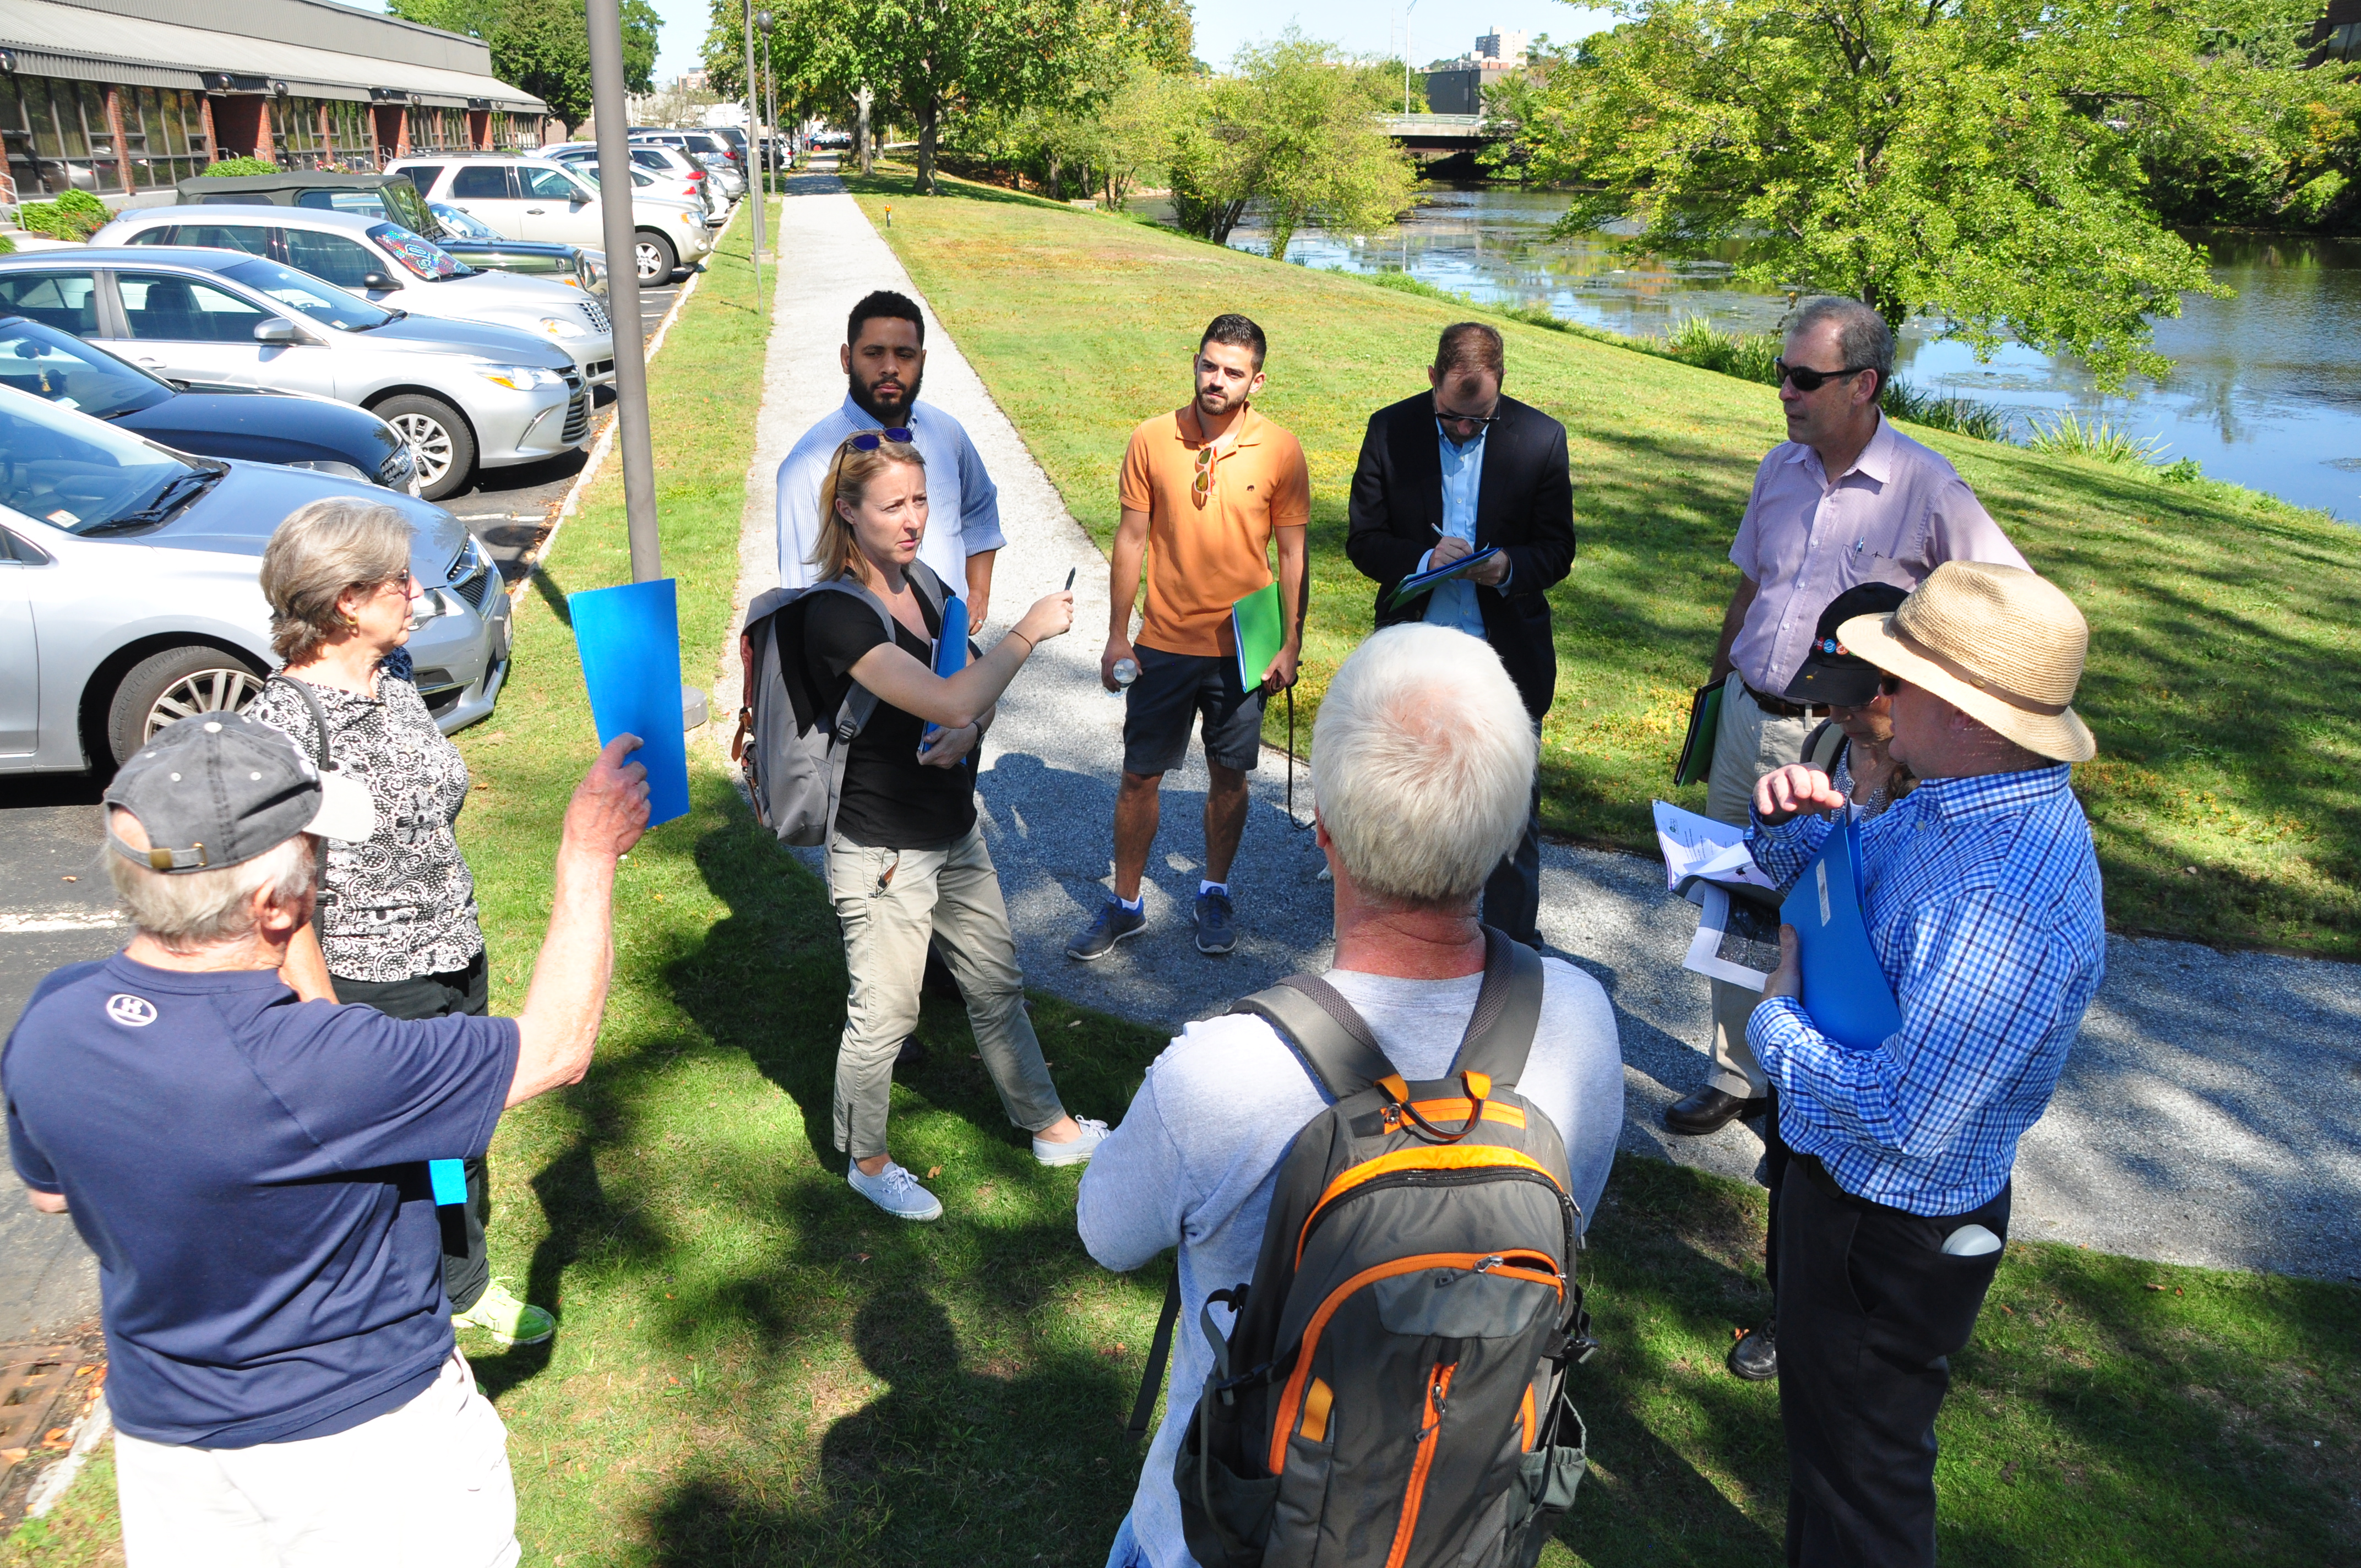 Walk_Talk the Malden with the DEP, Mystic River Watershed Association, Councilor Ryan, and the Friends of Malden River 2016